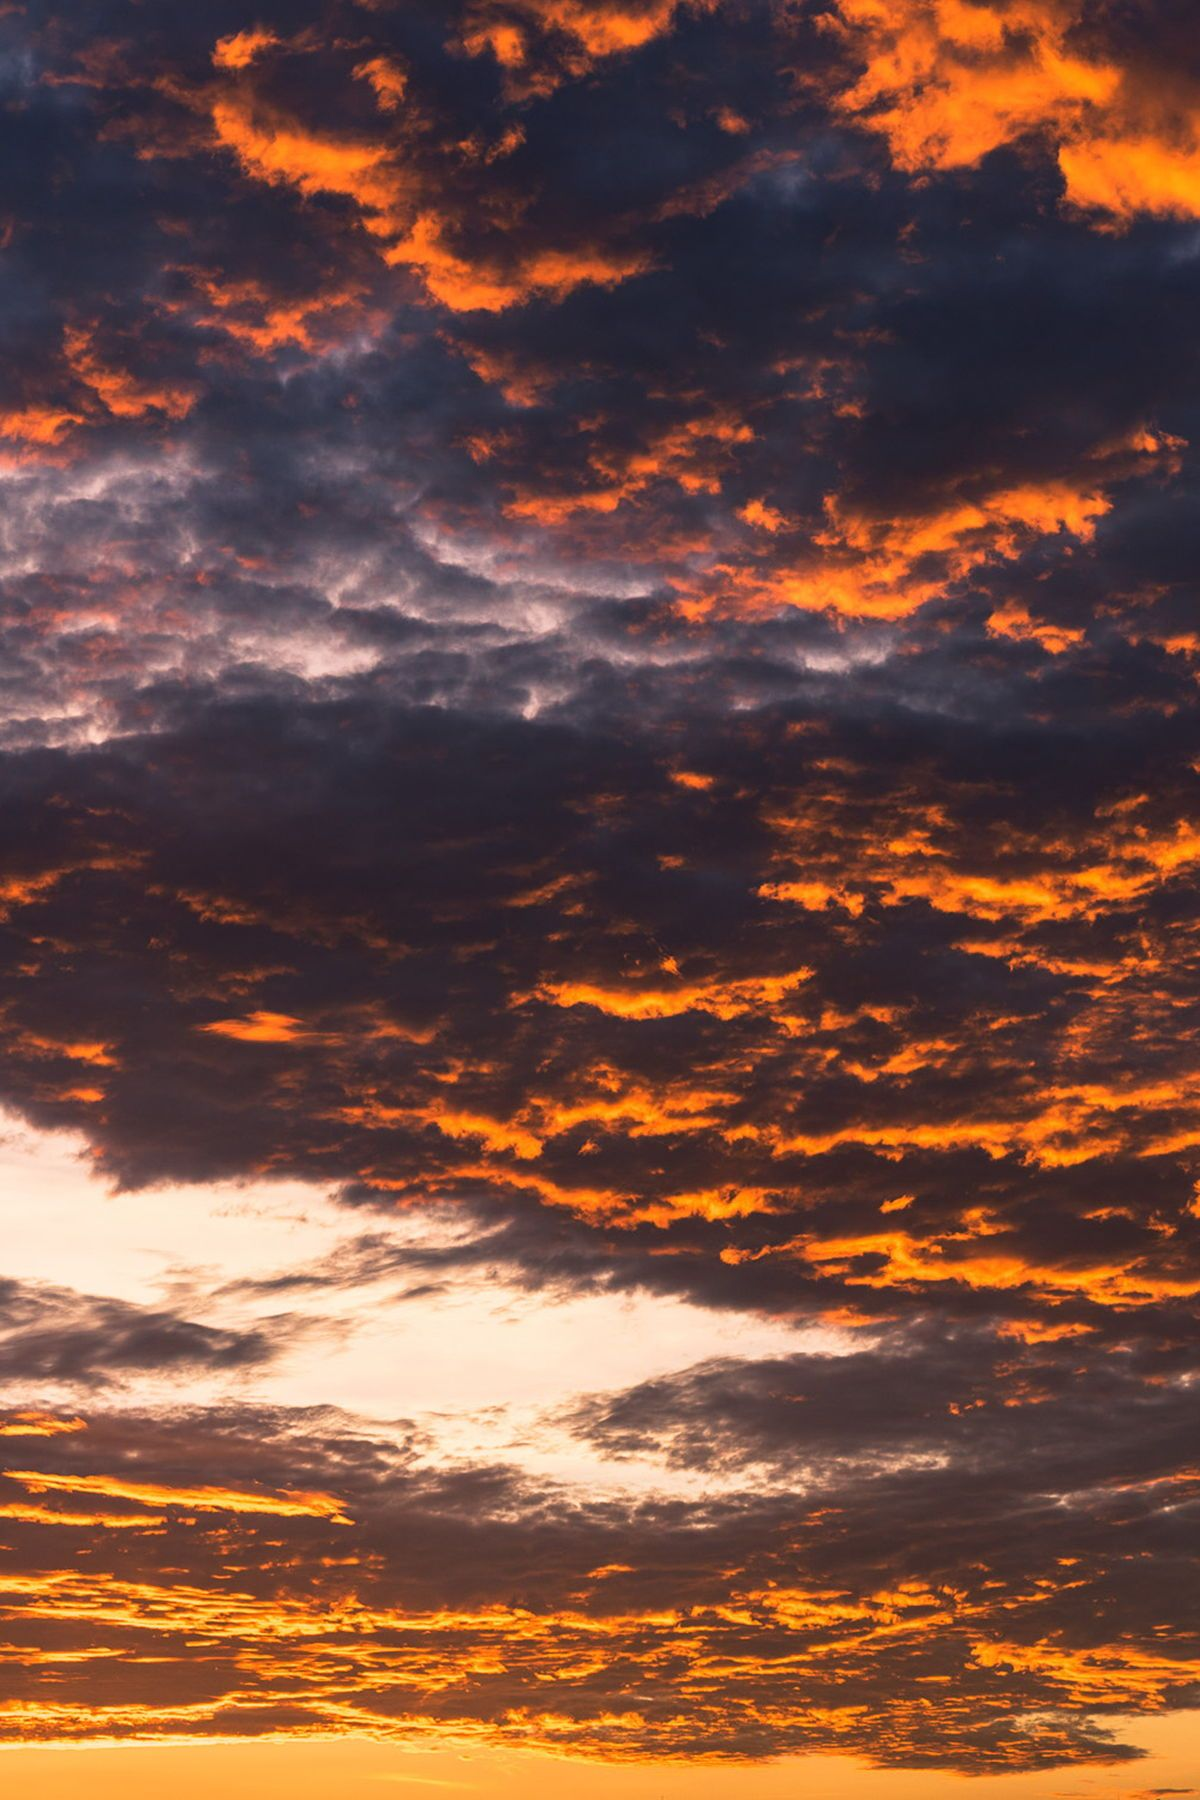 orange sunset clouds all of the orange things sky aesthetic clouds photography clouds orange sunset clouds all of the